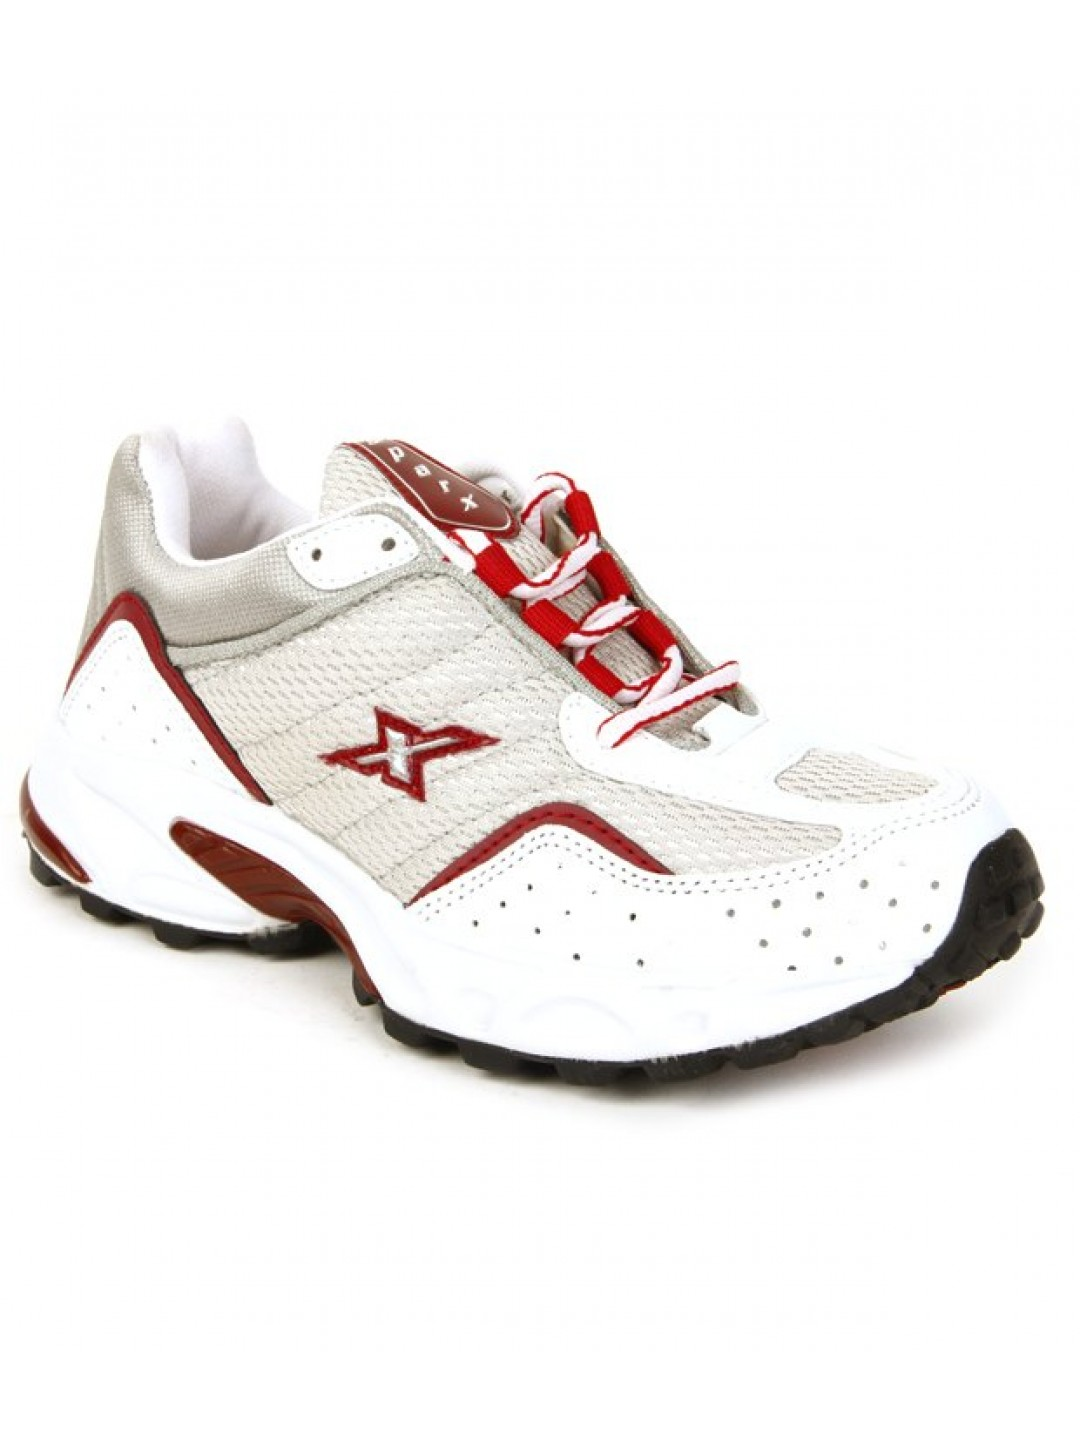 Silver \u0026 Red Running Shoes SM04-WSR